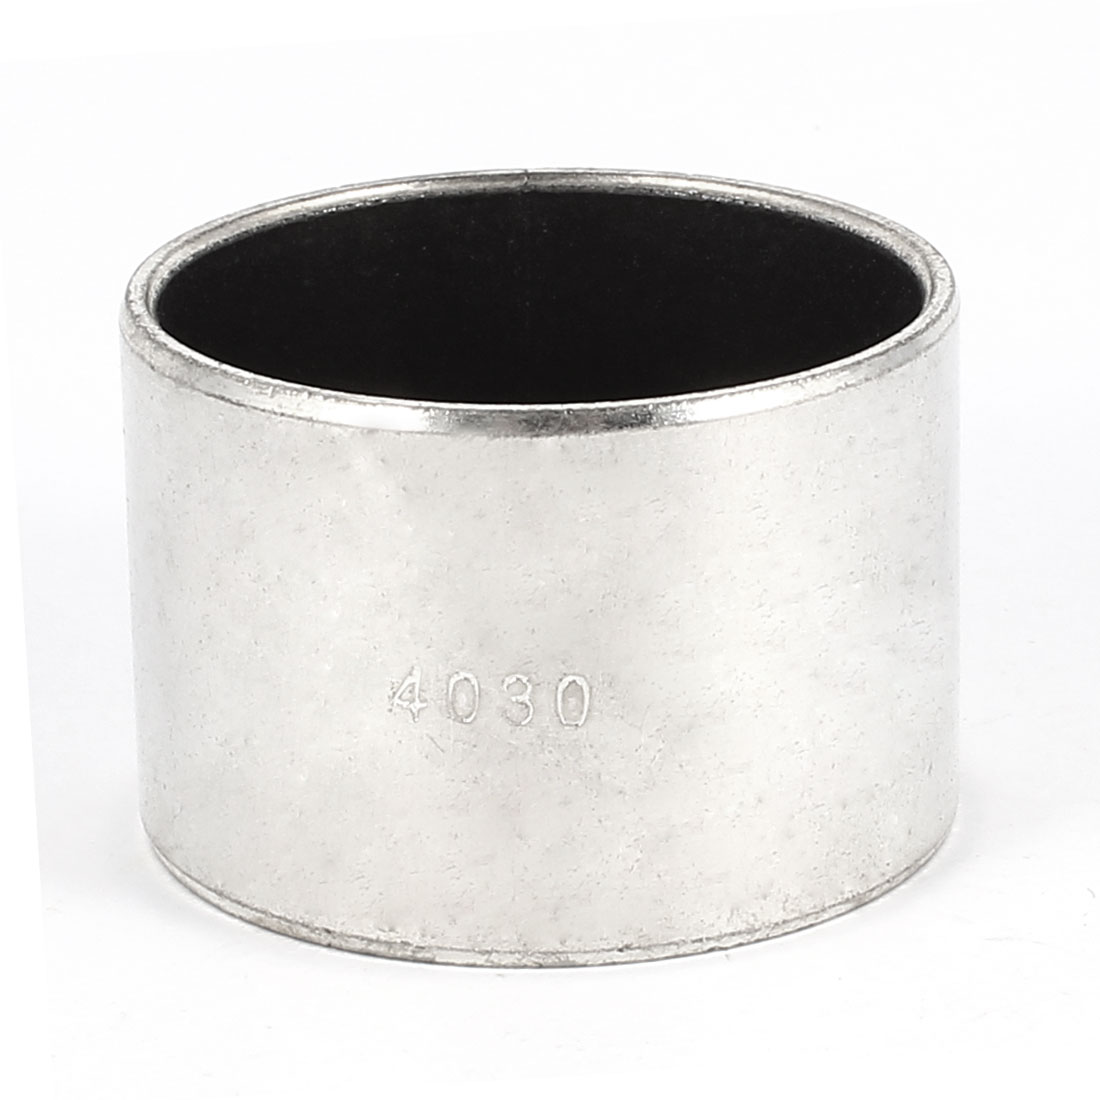 Carbon Steel Plain Oilless Bearing Sleeve Composite Bushing 4030 40mm x 30mm